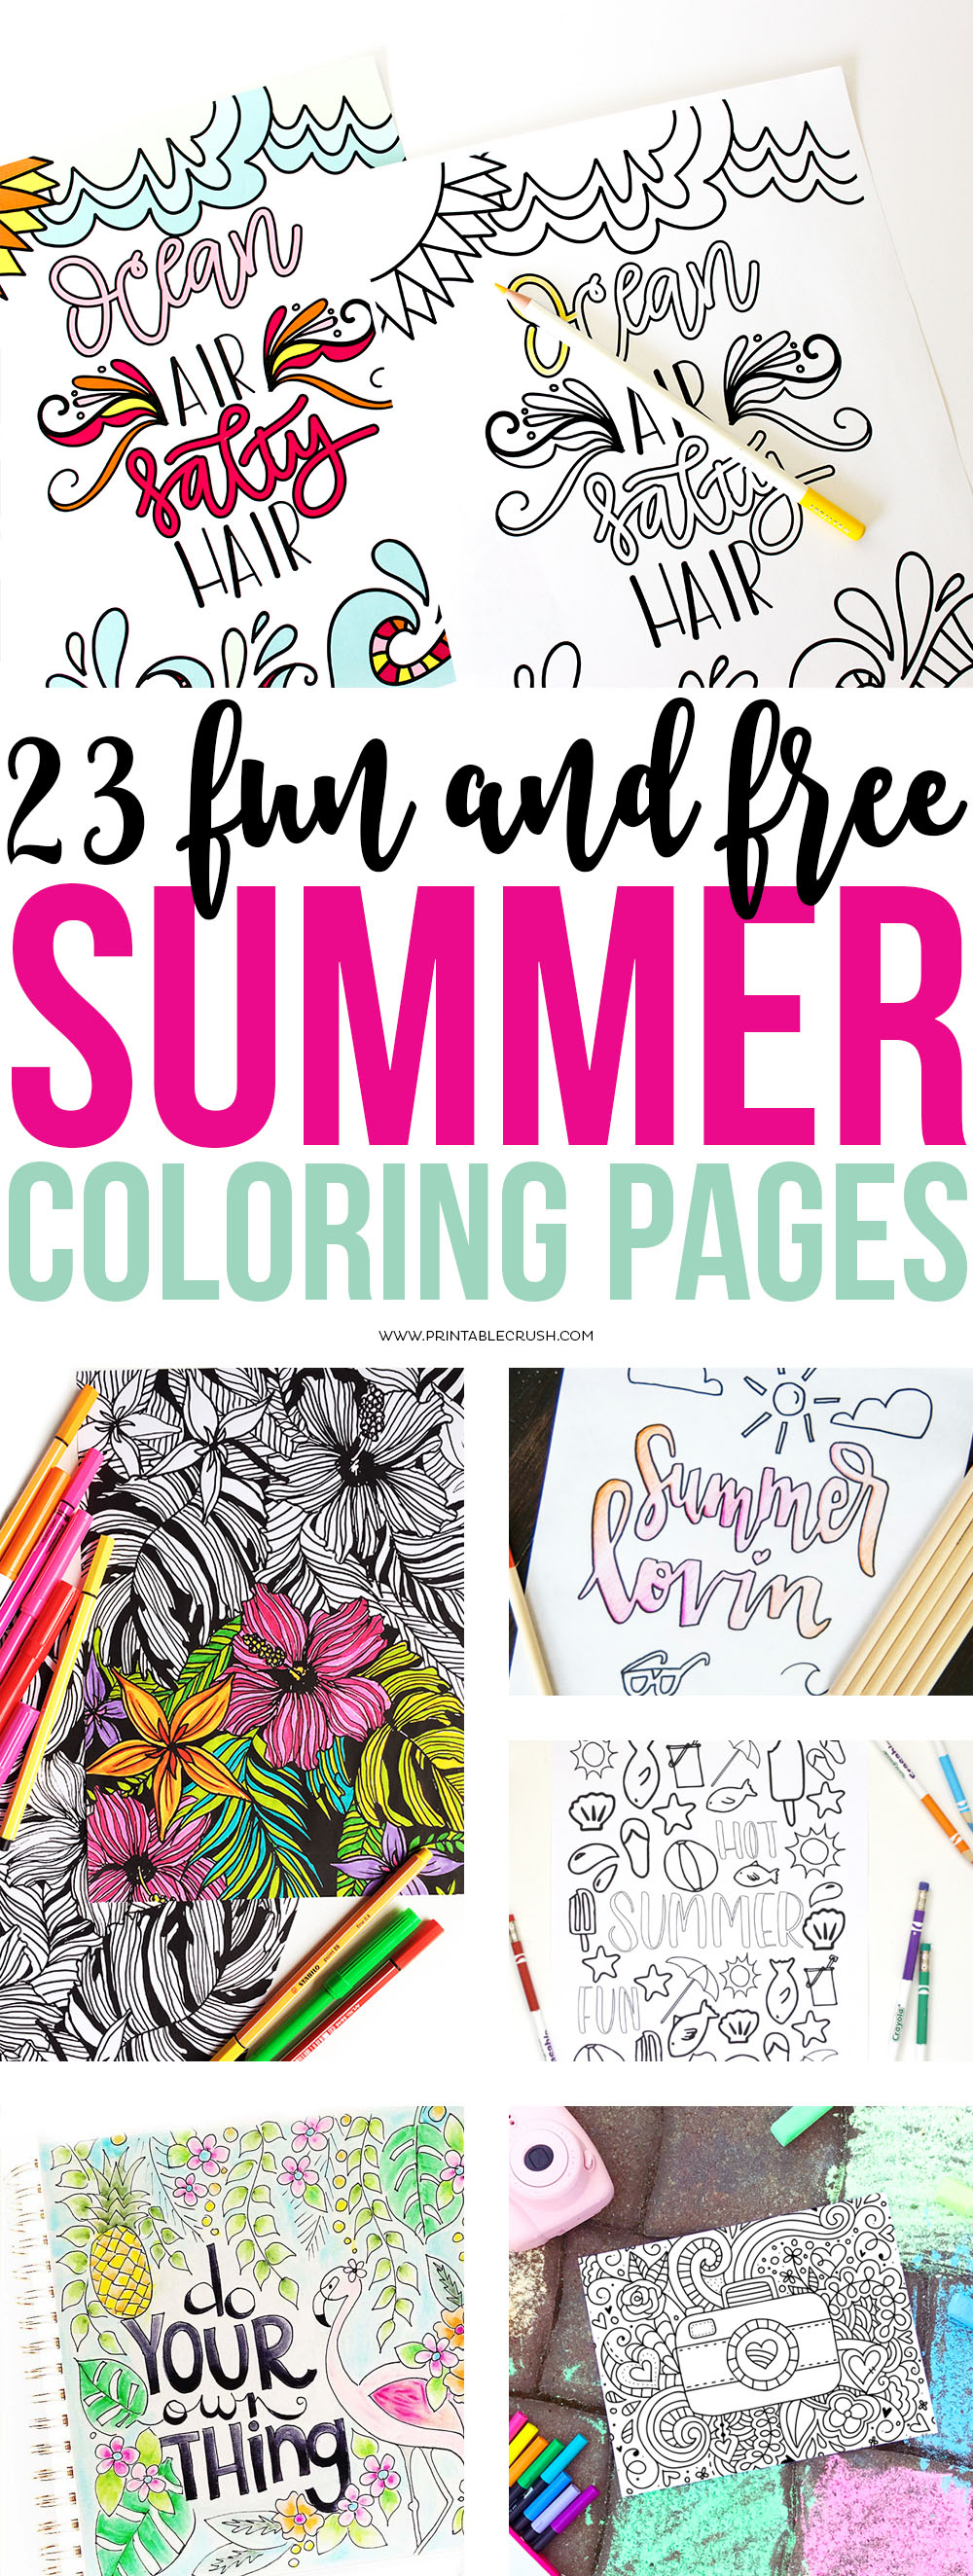 Make your summer more colorful with these 23 FREE Summer Coloring Pages for both kids and adults. Whether you have plans to sit by the pool, are taking a summer vacation or simply want to color these will be the perfect summer activity!